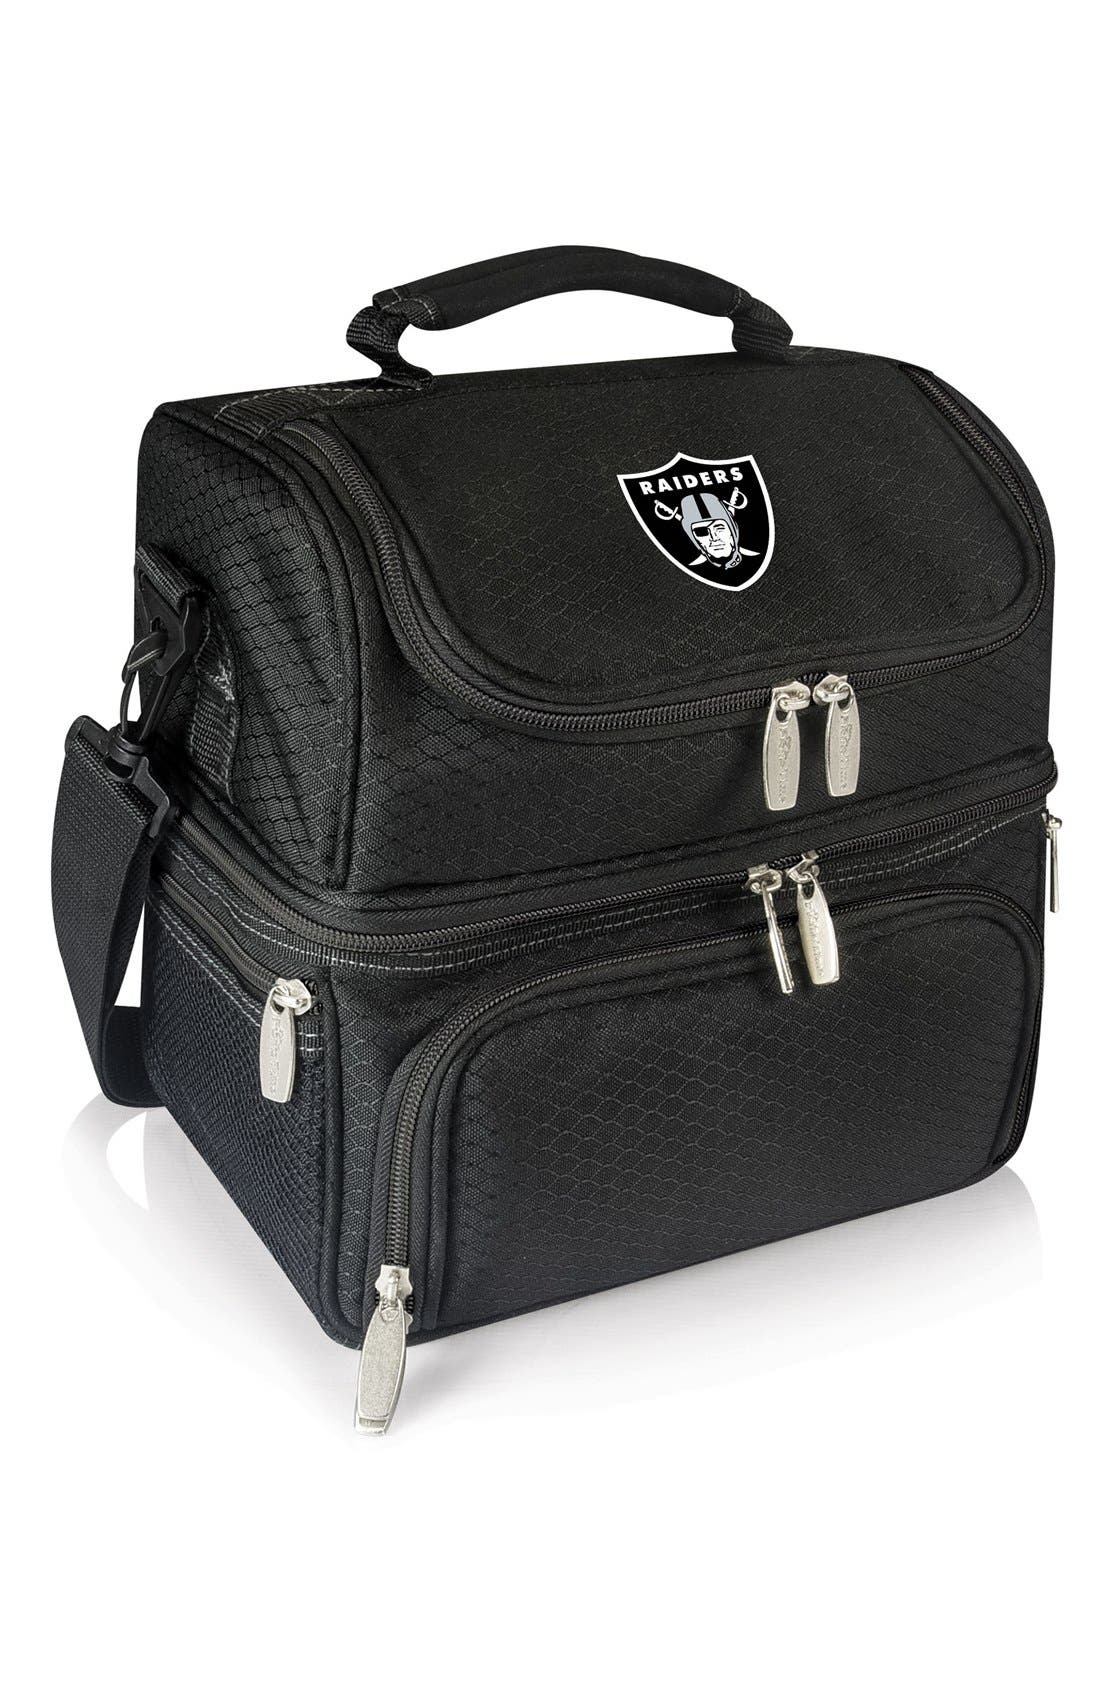 Alternate Image 1 Selected - Picnic Time 'Pranzo' NFL Insulated Lunch Box